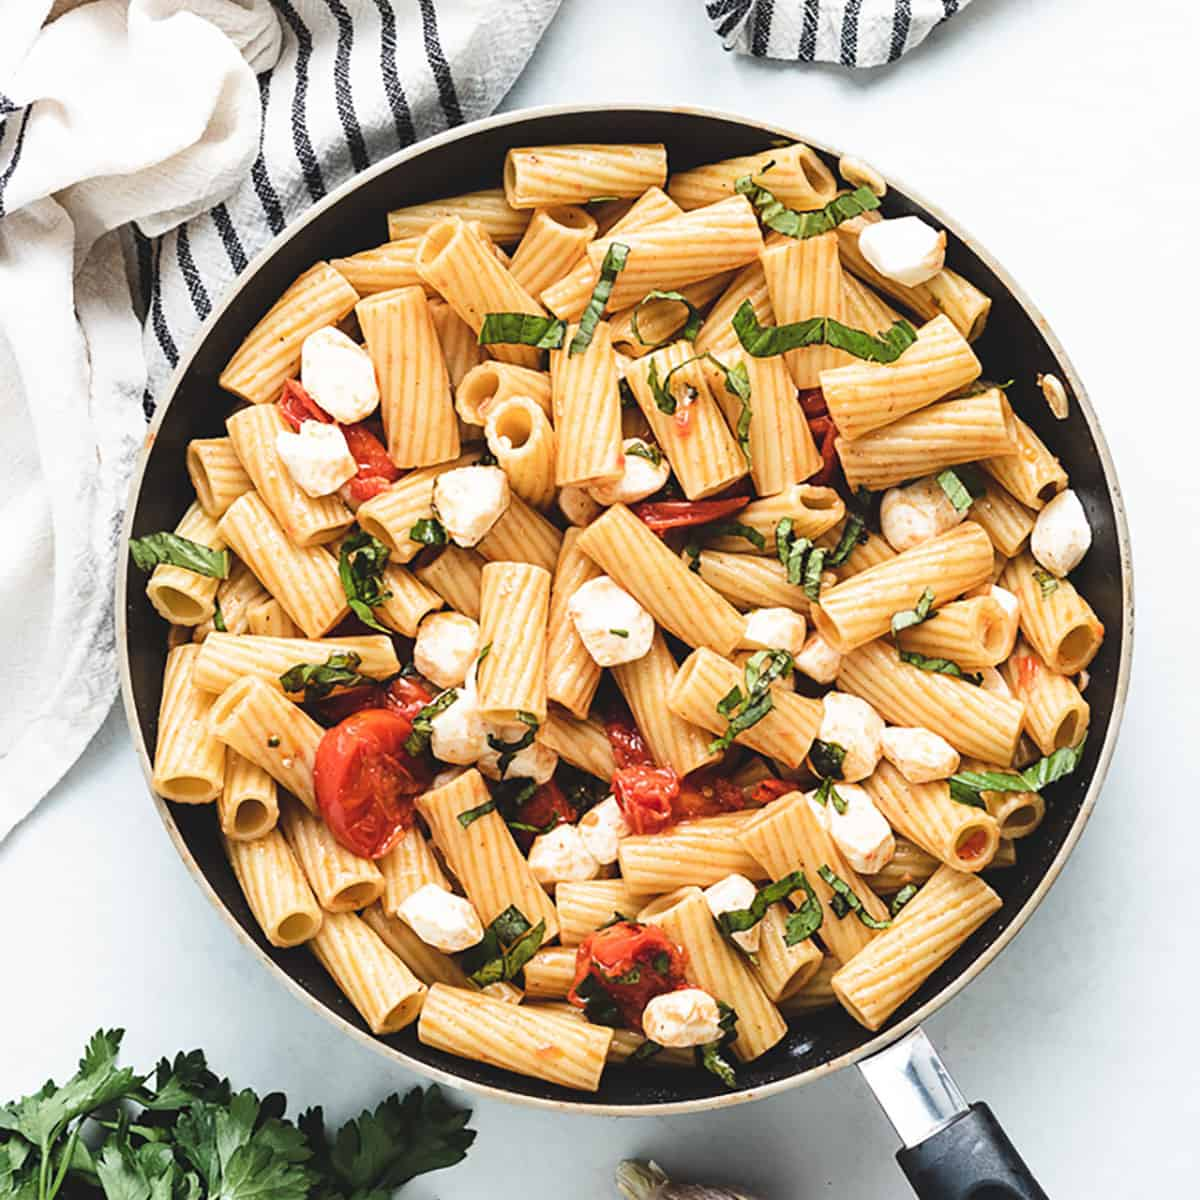 An aerial view of the rigatoni caprese in a pan.